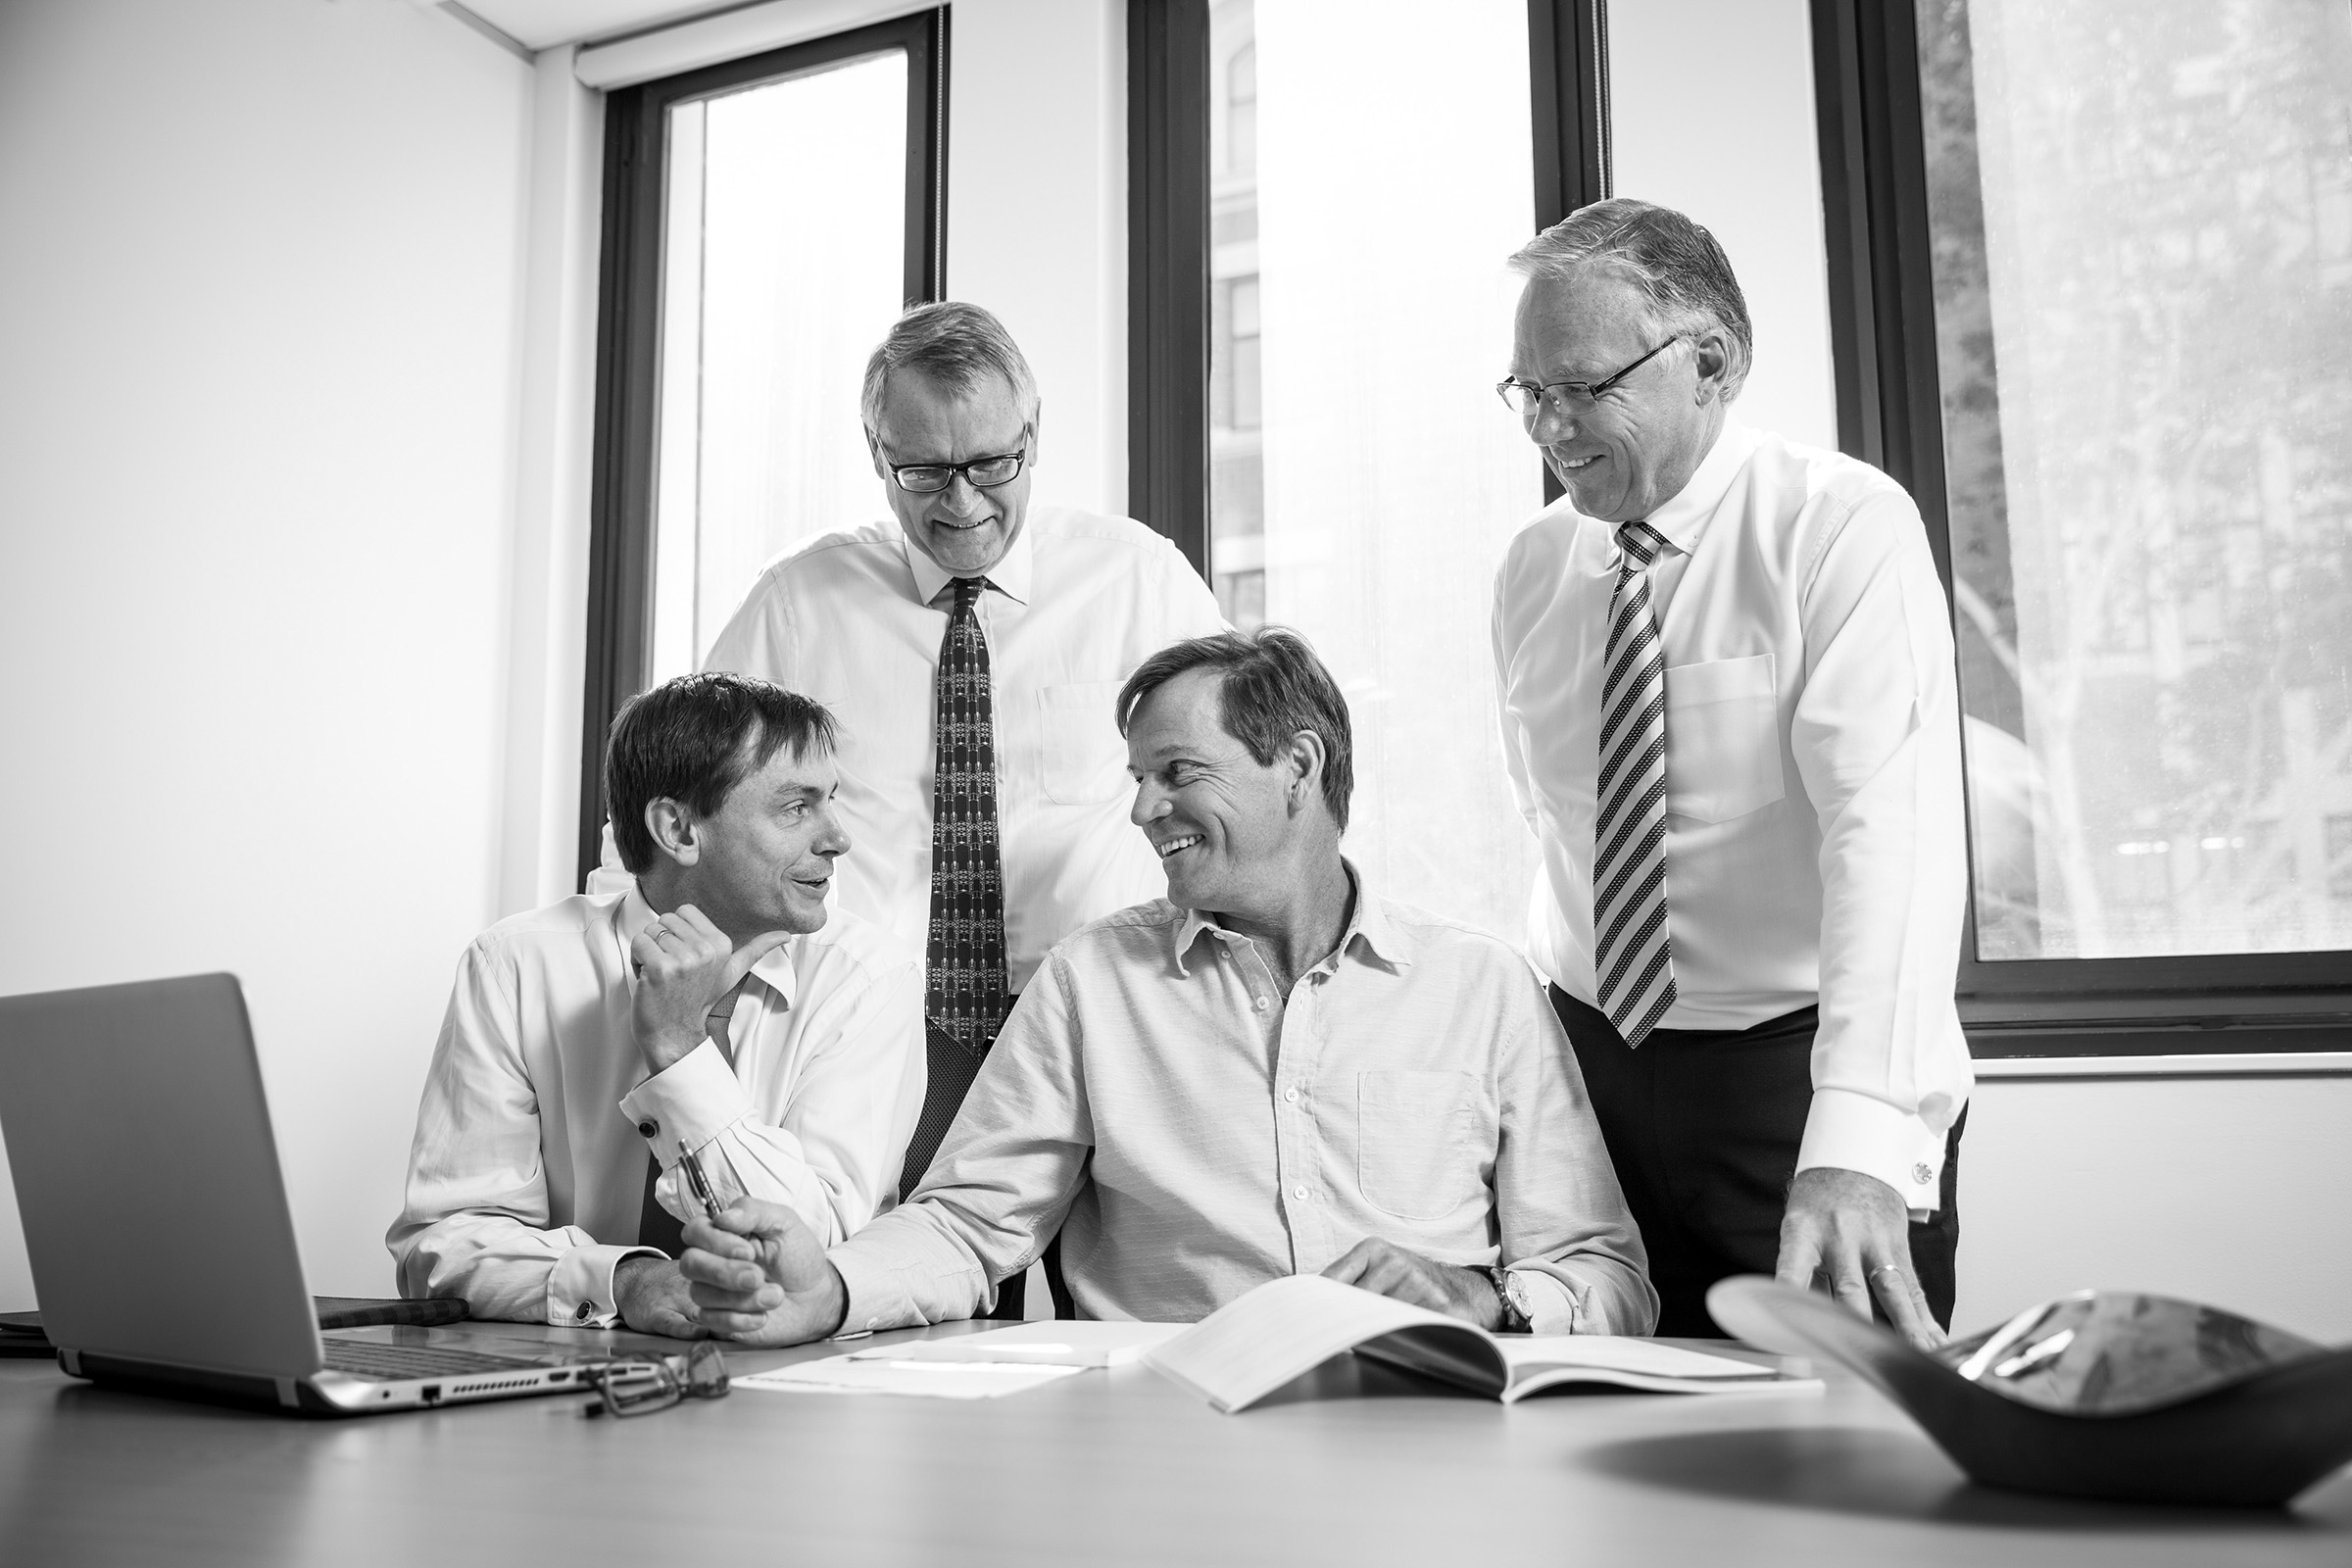 Corporate editorial photography working collaborating team of four men in an office infant of laptop